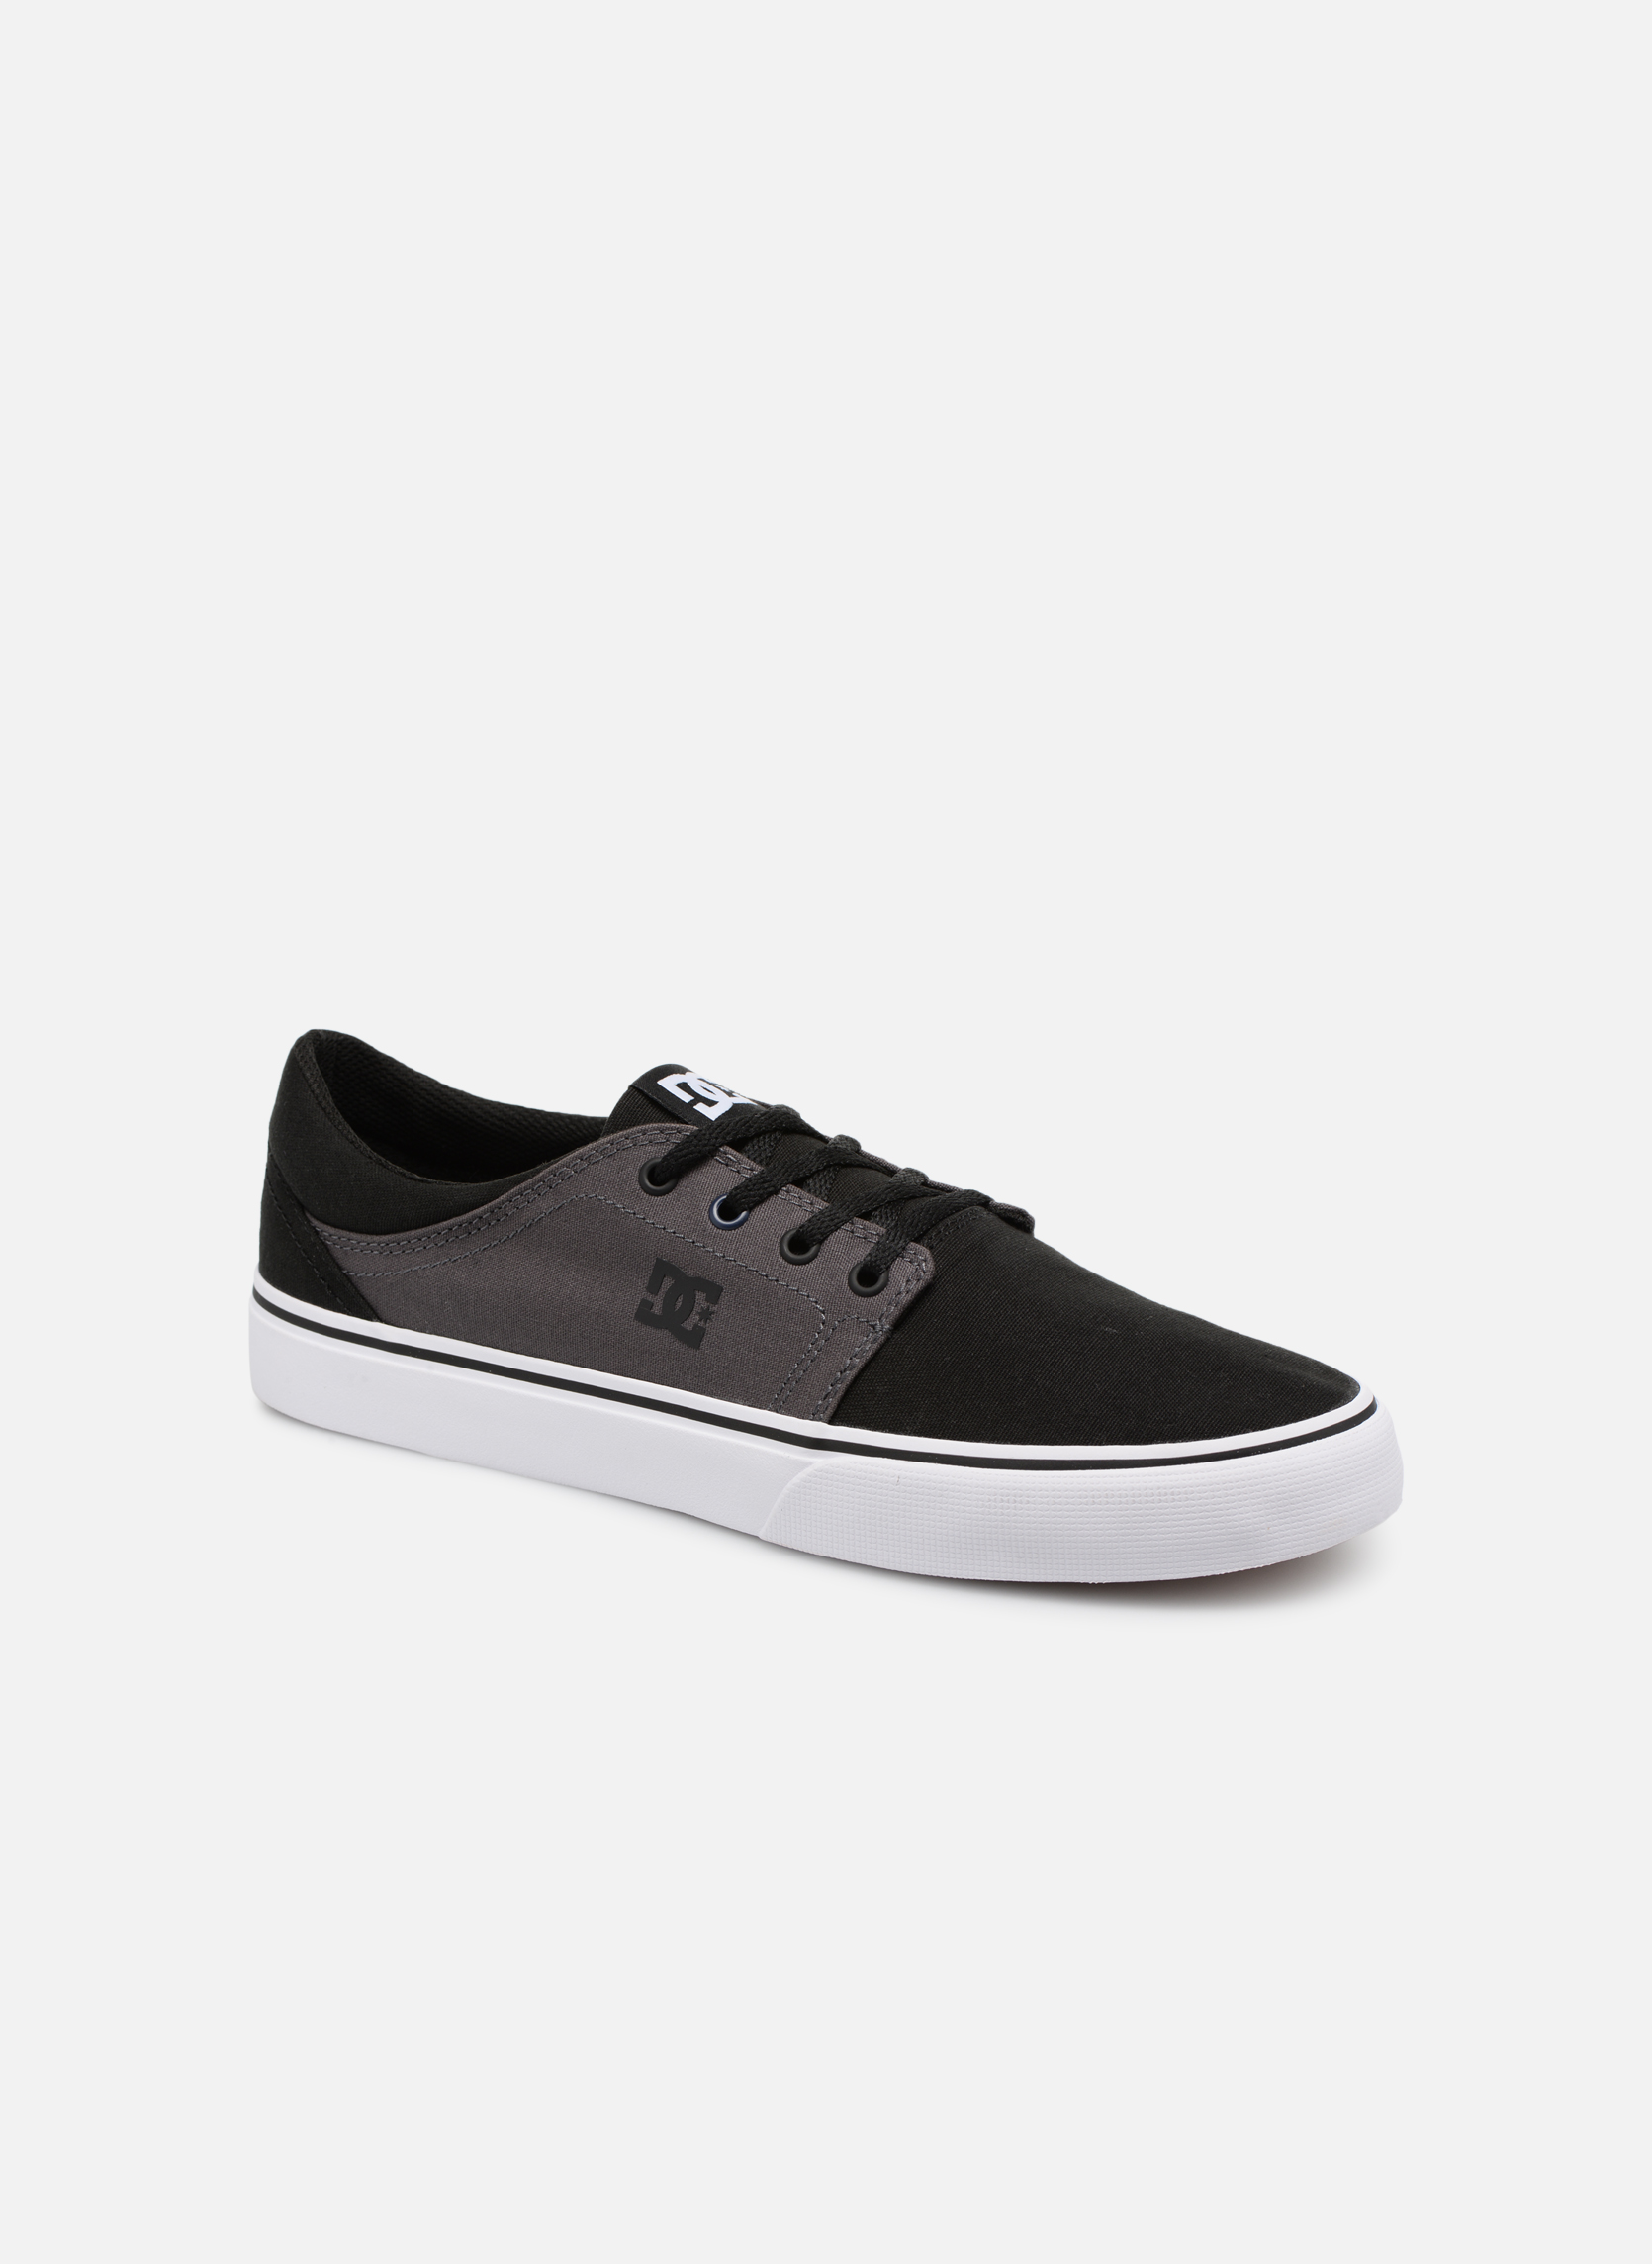 Baskets Homme Trase Tx